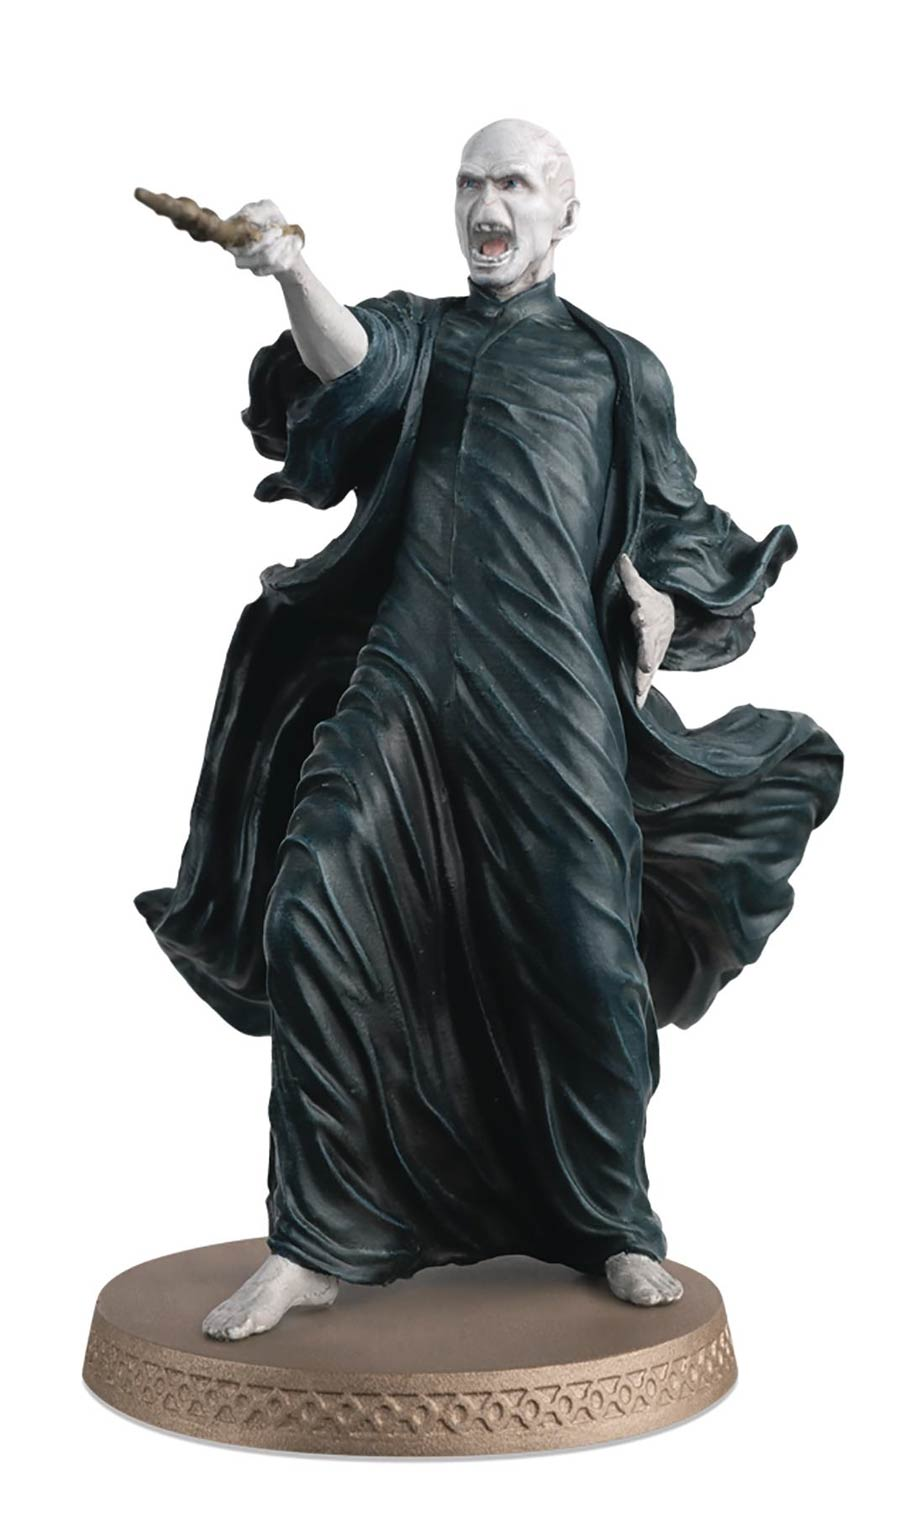 Wizarding World Figurine Collection #2 Voldemort